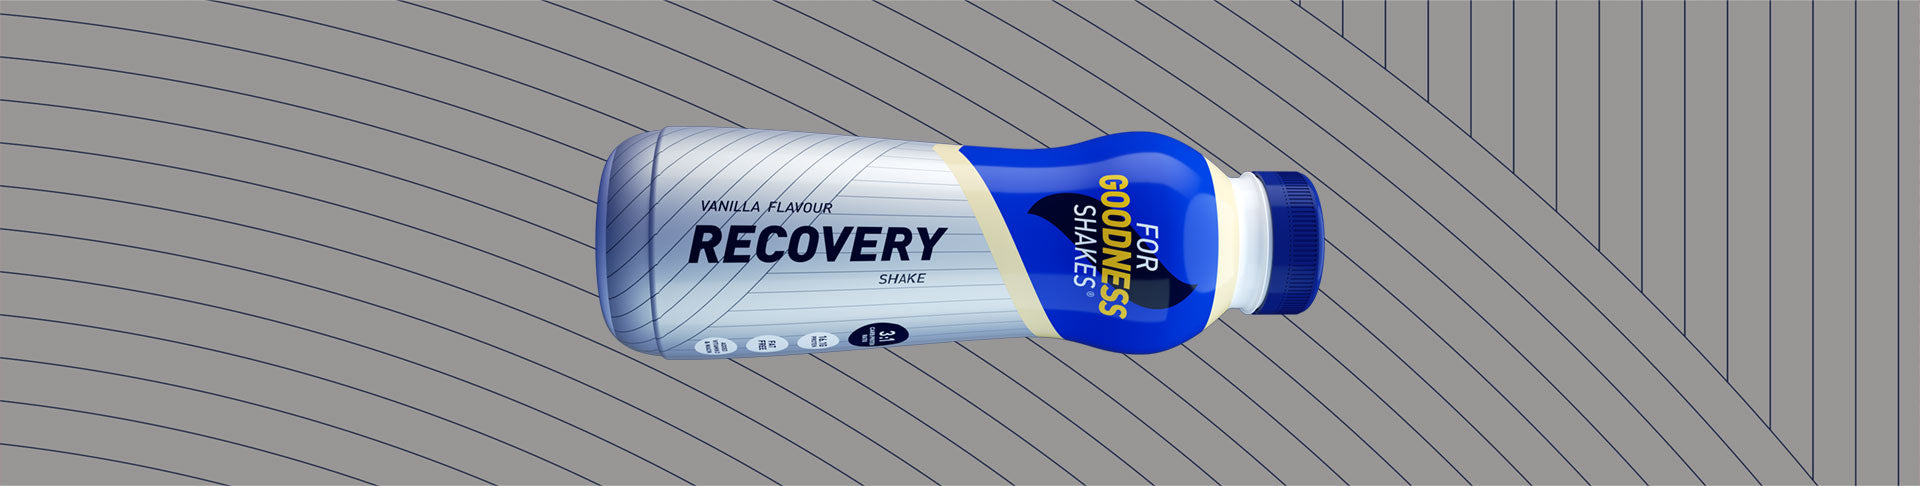 Recovery Shake (475ml) - 10 pack